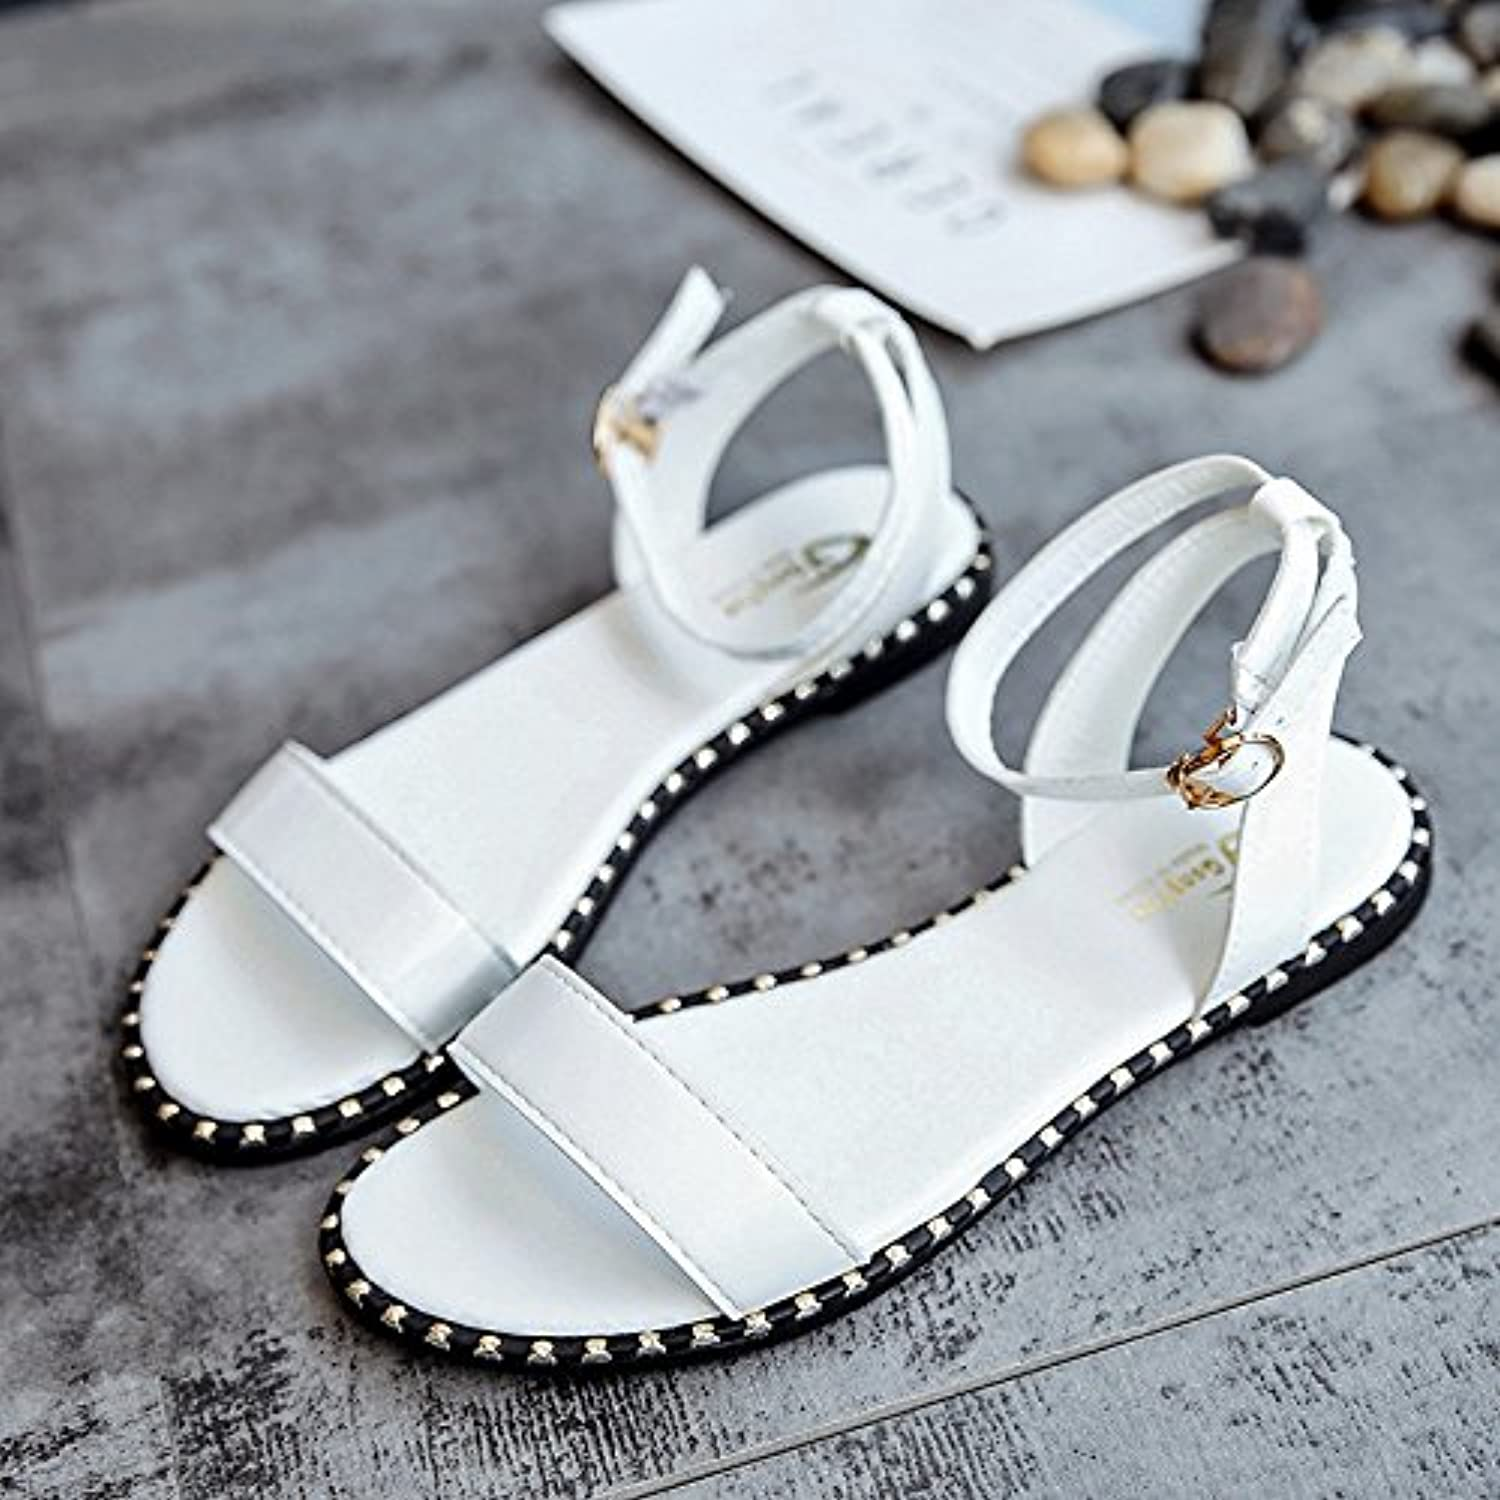 2956424b2 LGK FA Simple Summer Women S A Sandals Korean Student Summer Sandals Shoes  Are A Simple Korean All-Match Crocs Beach Parent B0769DC4LP d02251a